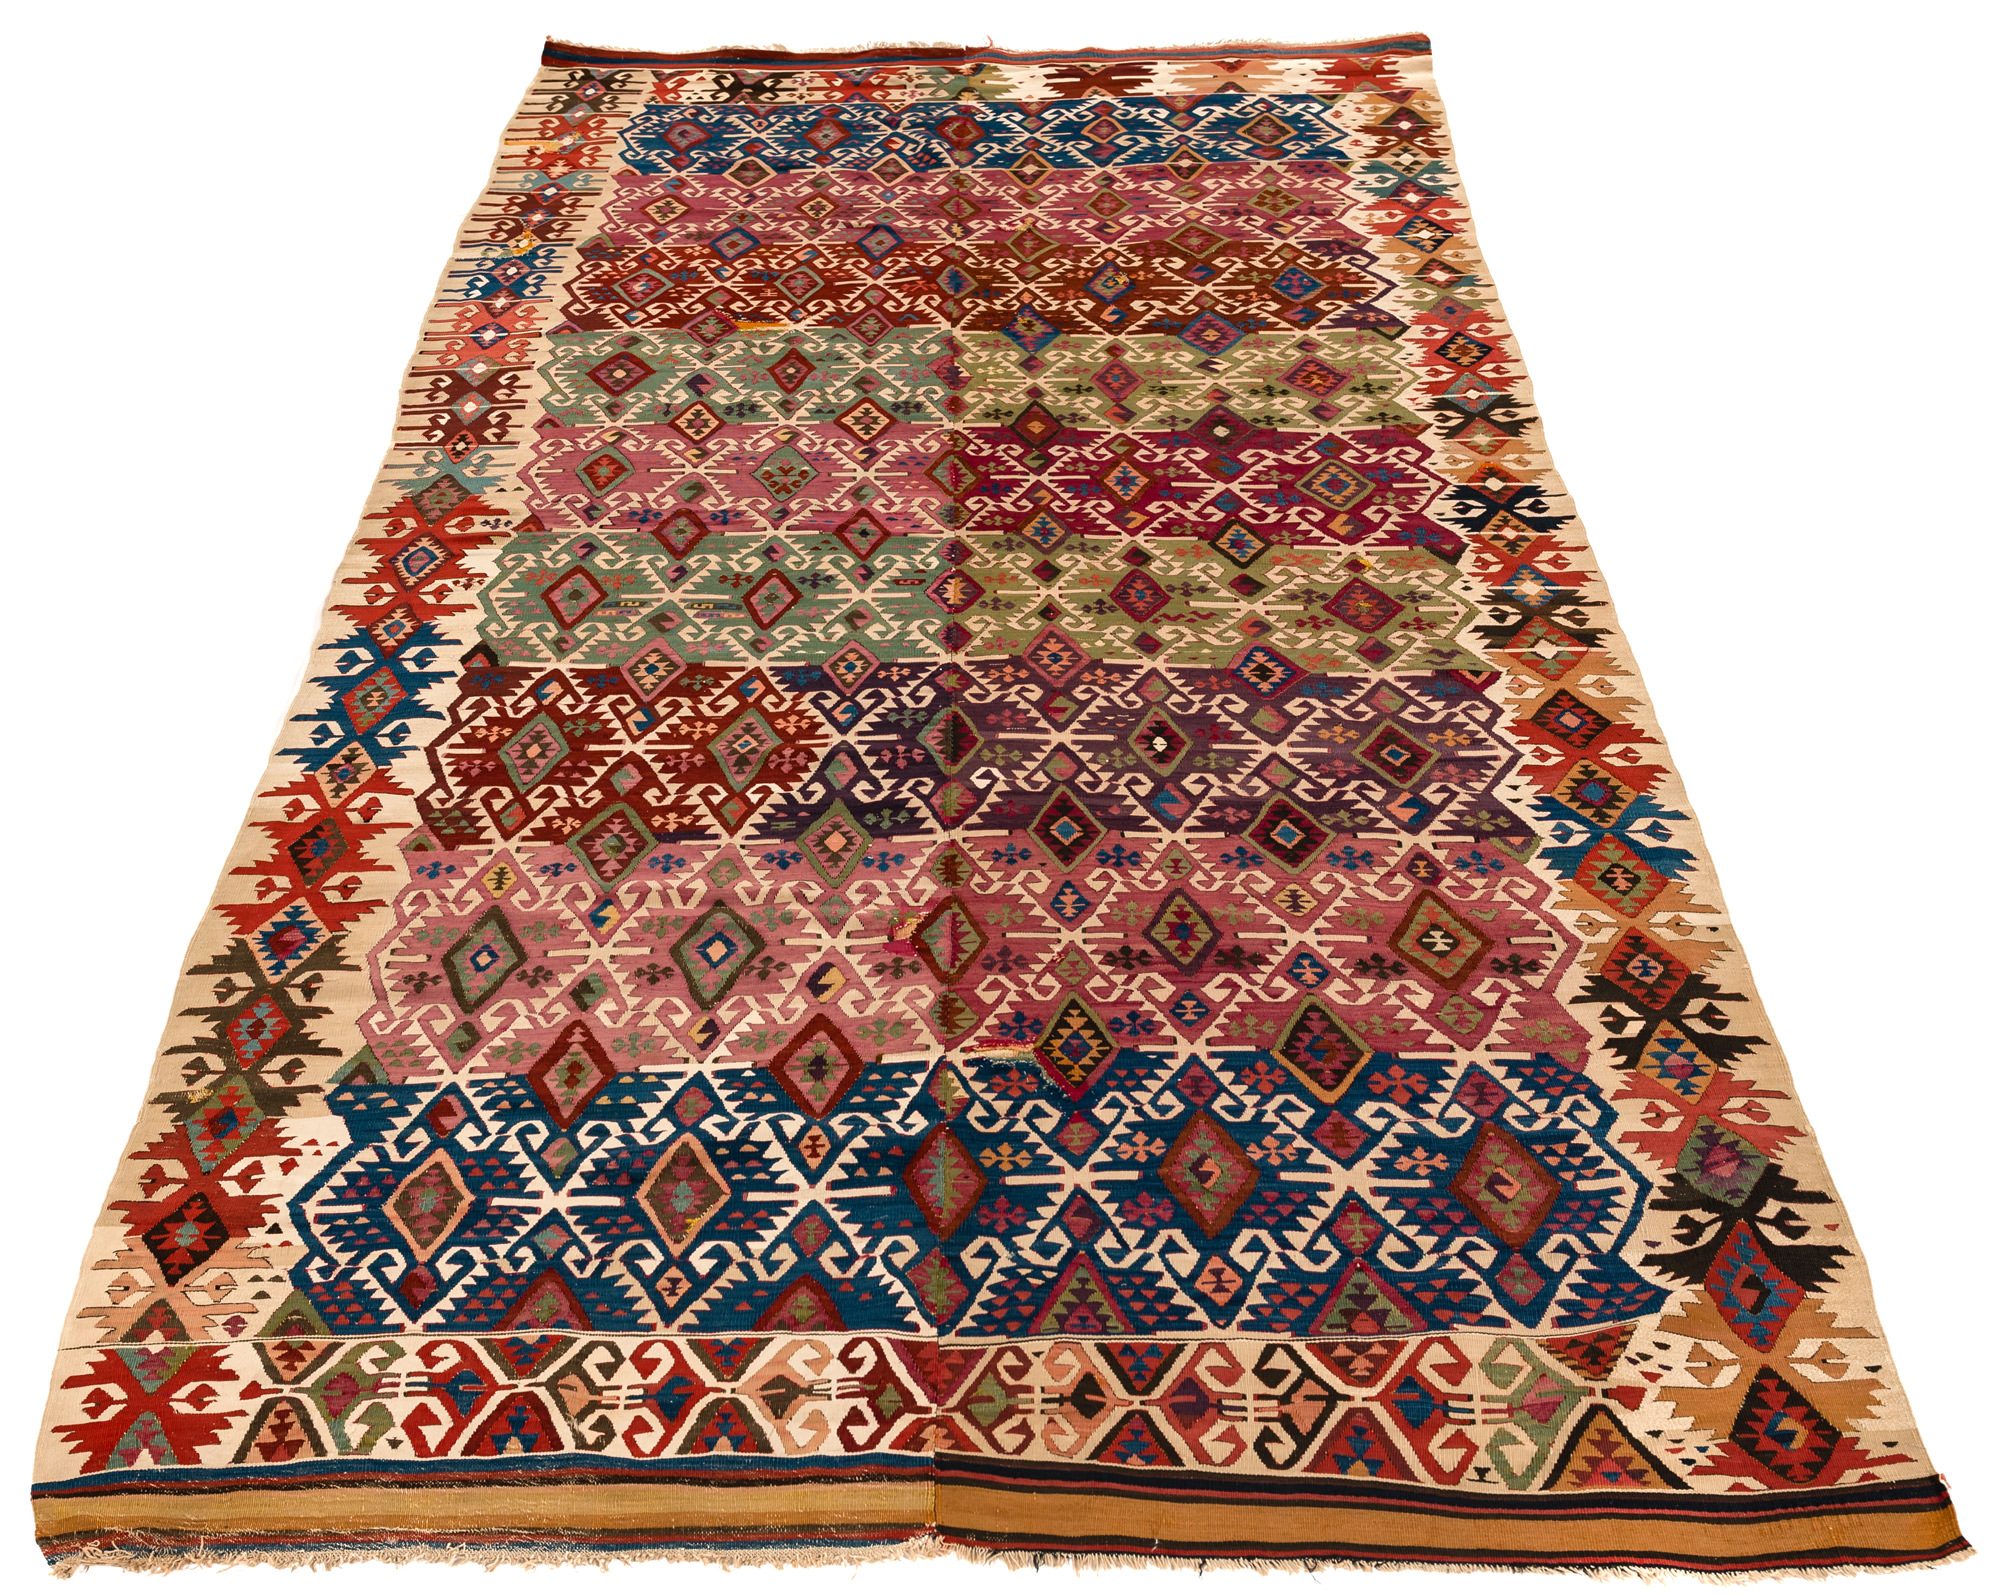 Antique Turkish Reyhanli Kilim 5 2 Quot 215 10 9 Quot